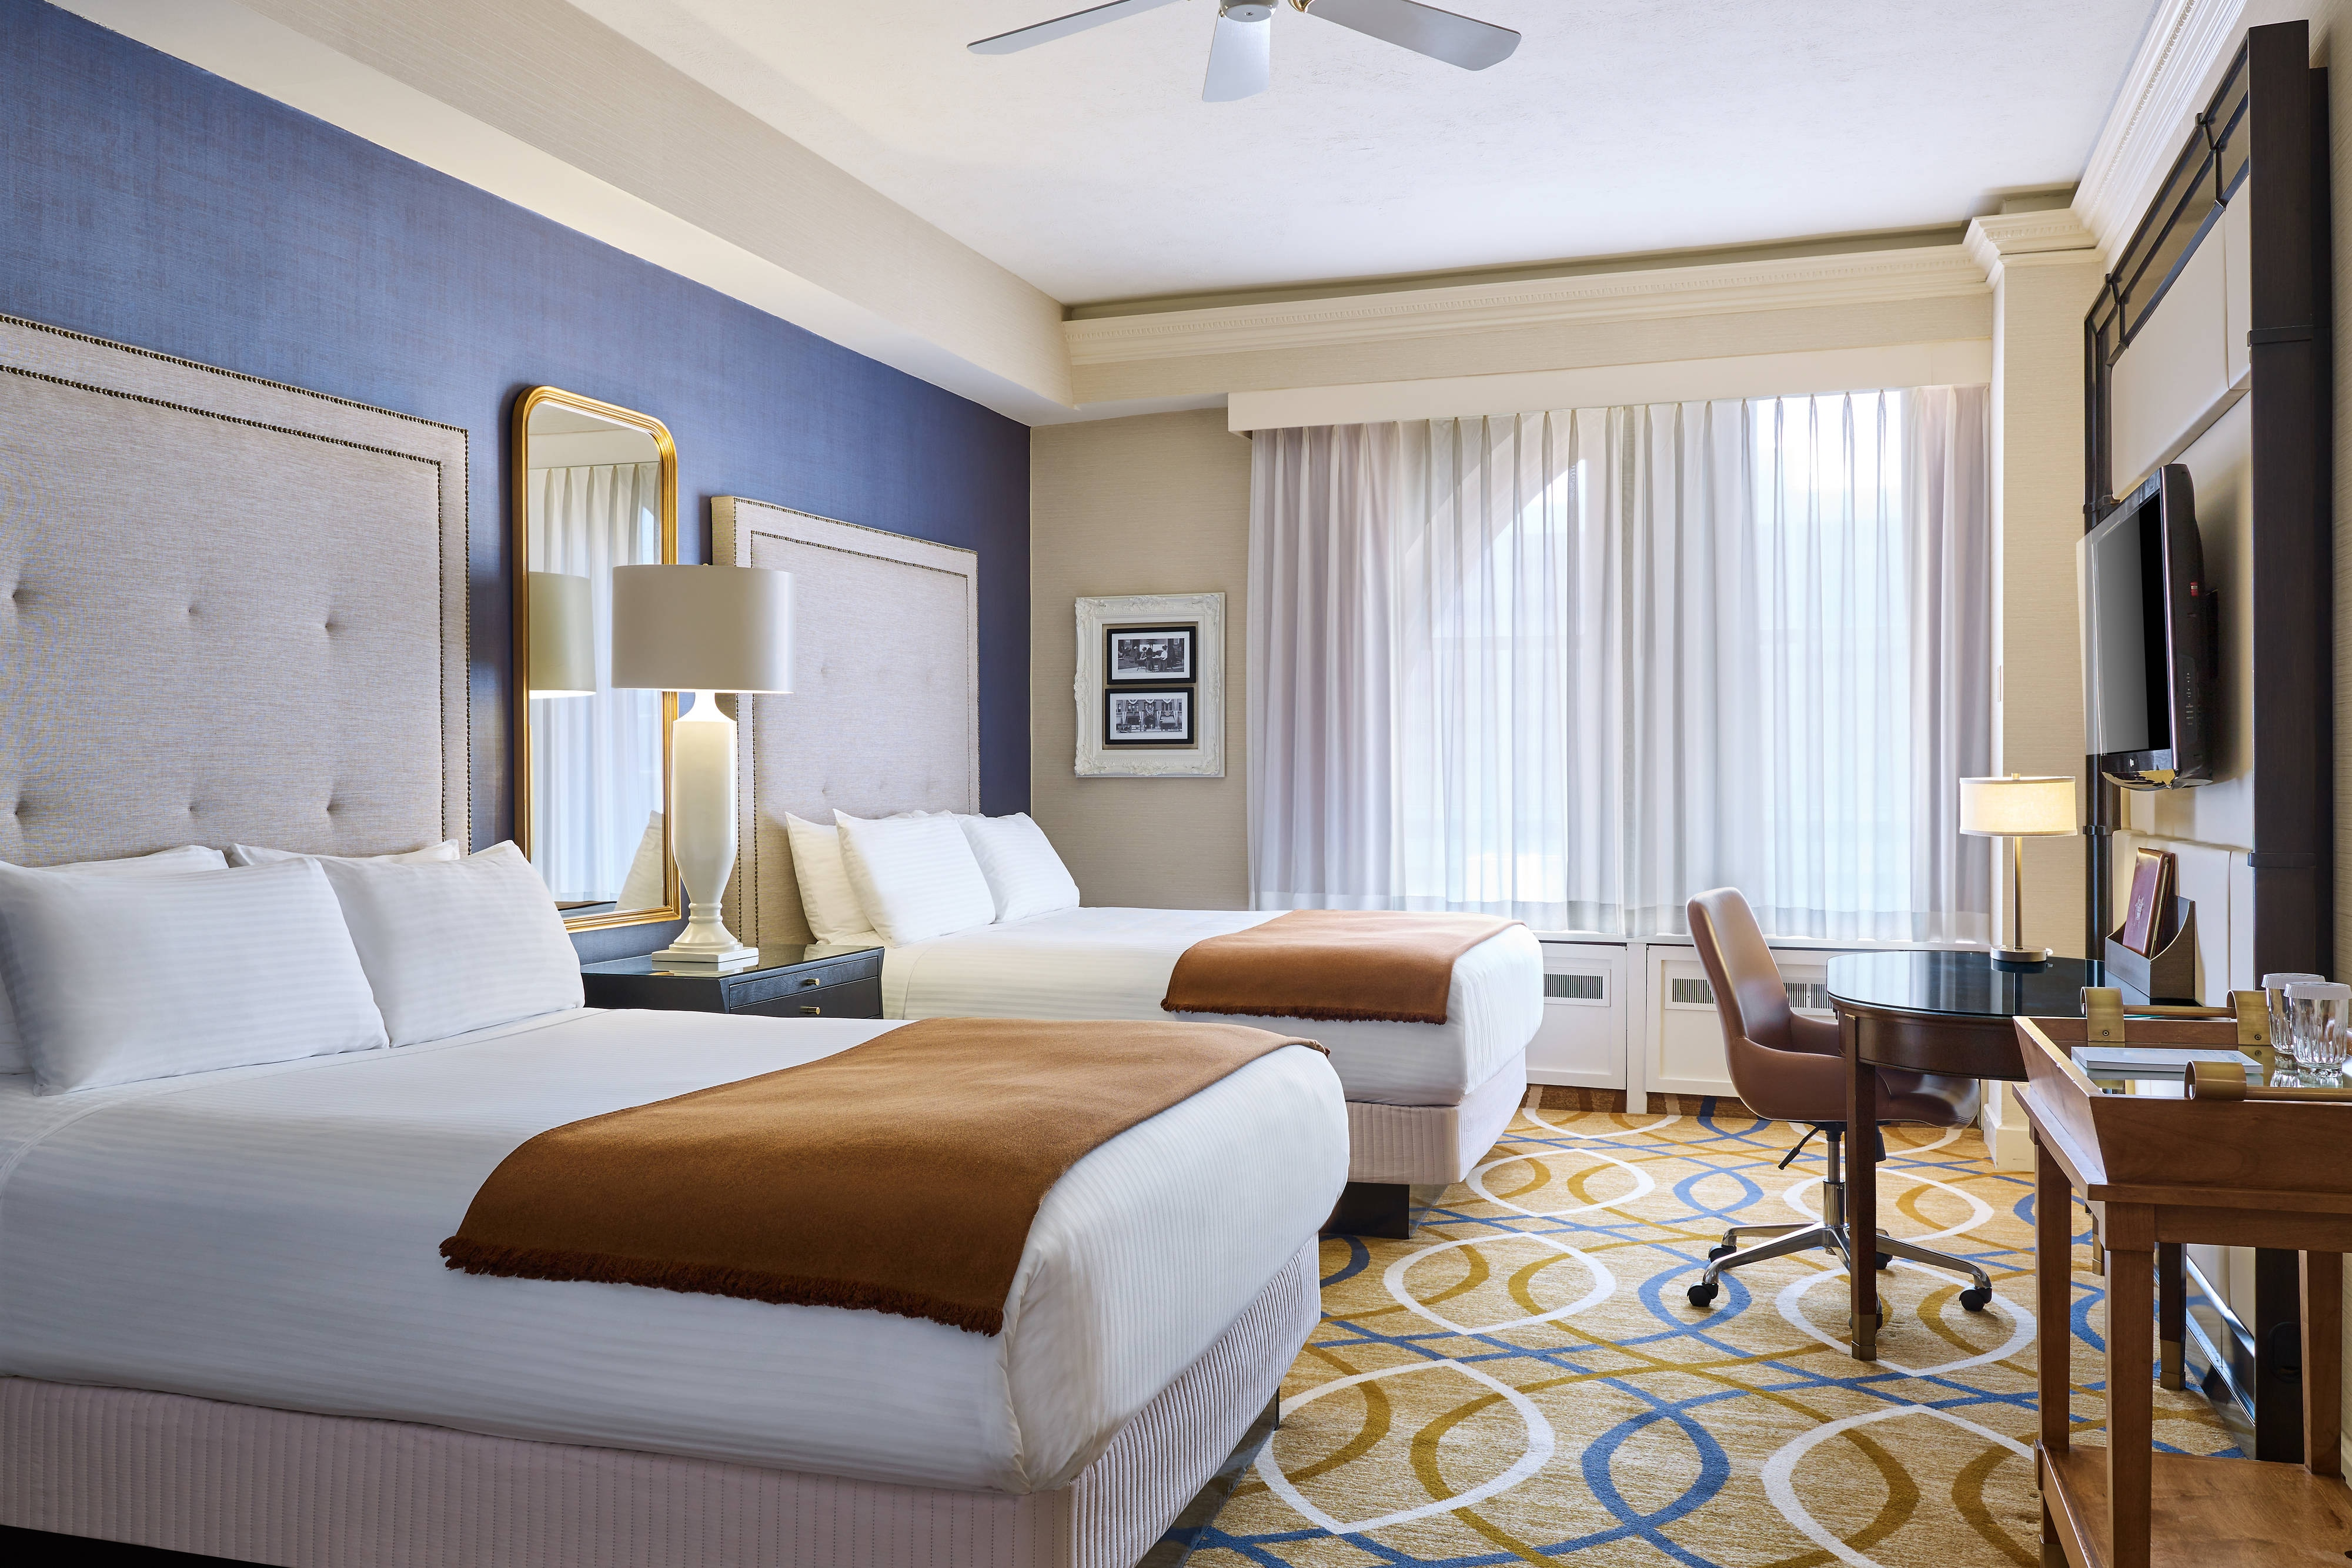 Luxury Hotel in Denver | The Brown Palace Hotel and Spa | Boutique Hotel in Denver